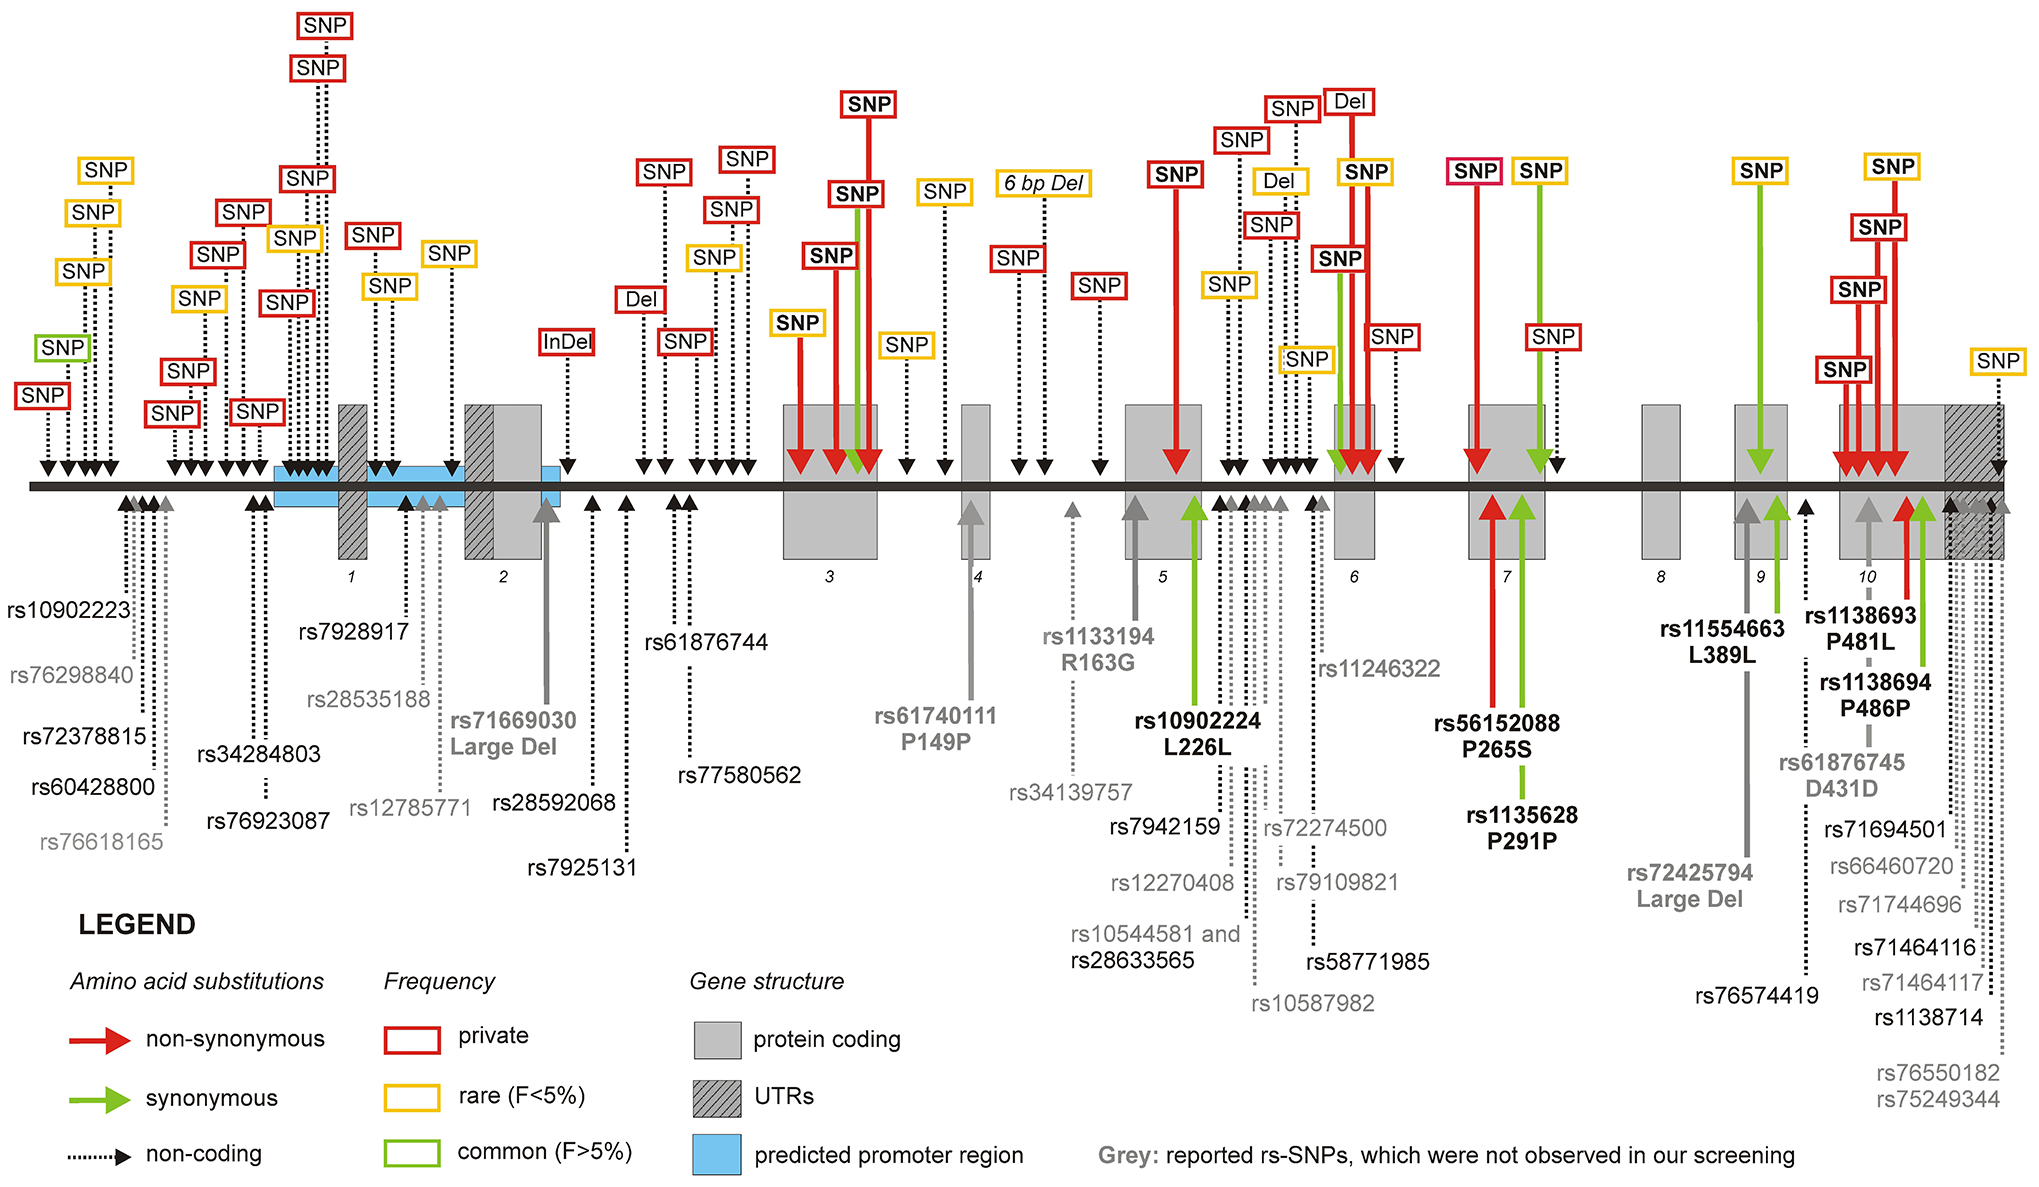 Frequency, type, and localization of all novel variants.